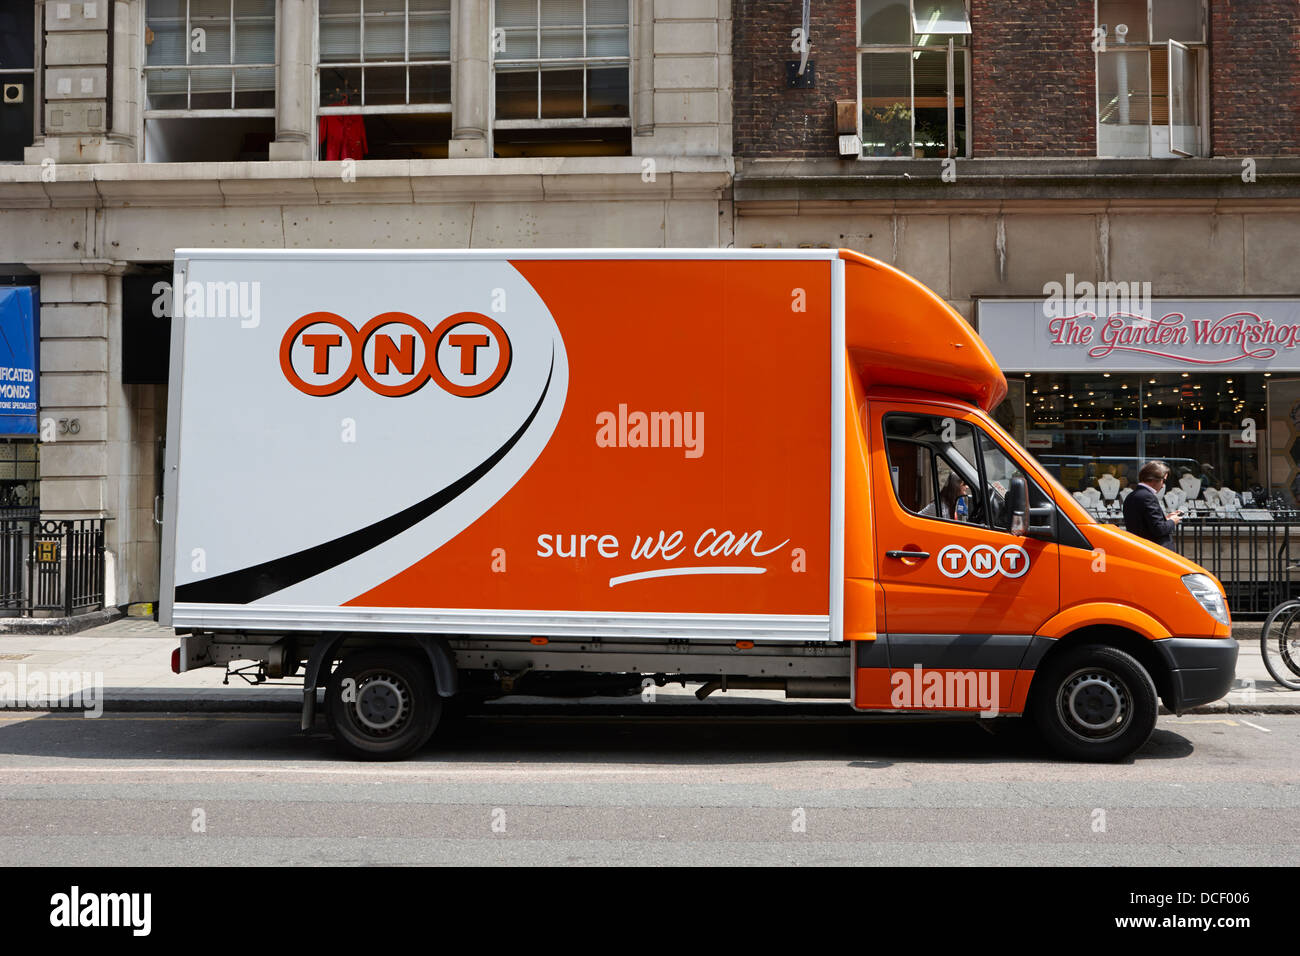 TNT mail and postal delivery van in central London England UK - Stock Image